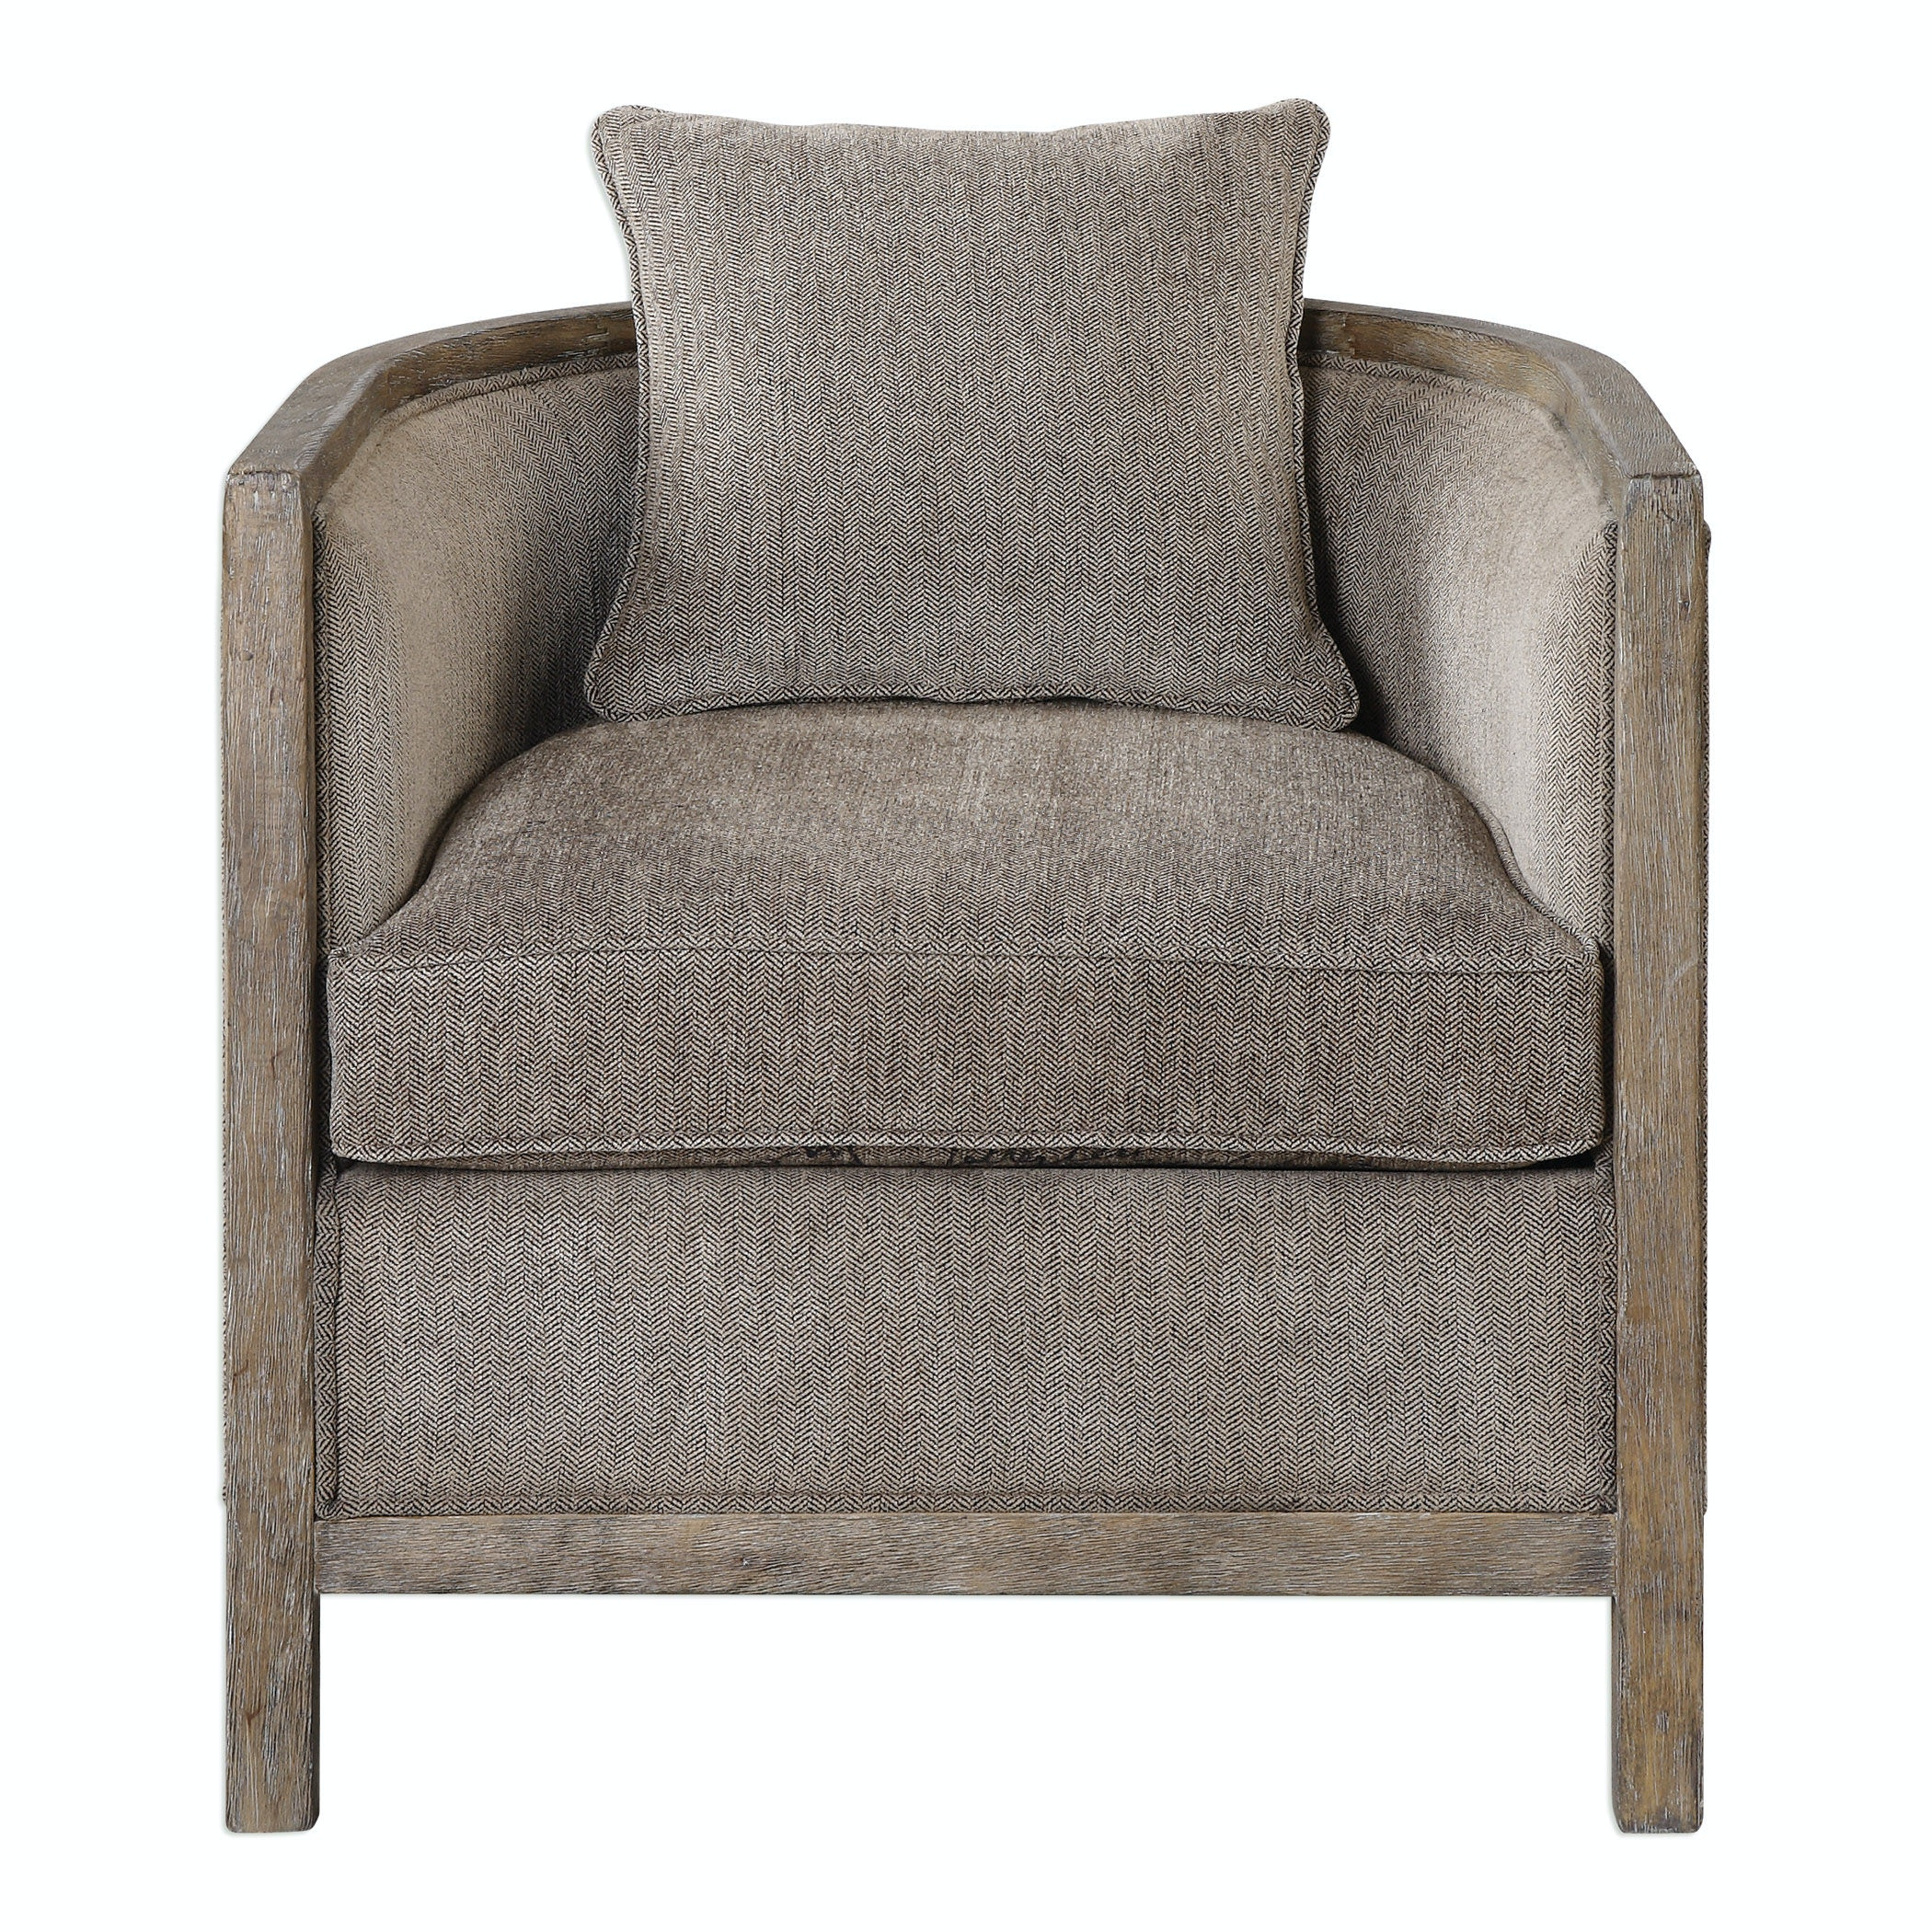 tub accent chair trendy chairs uk uttermost viaggio gray chenille living room